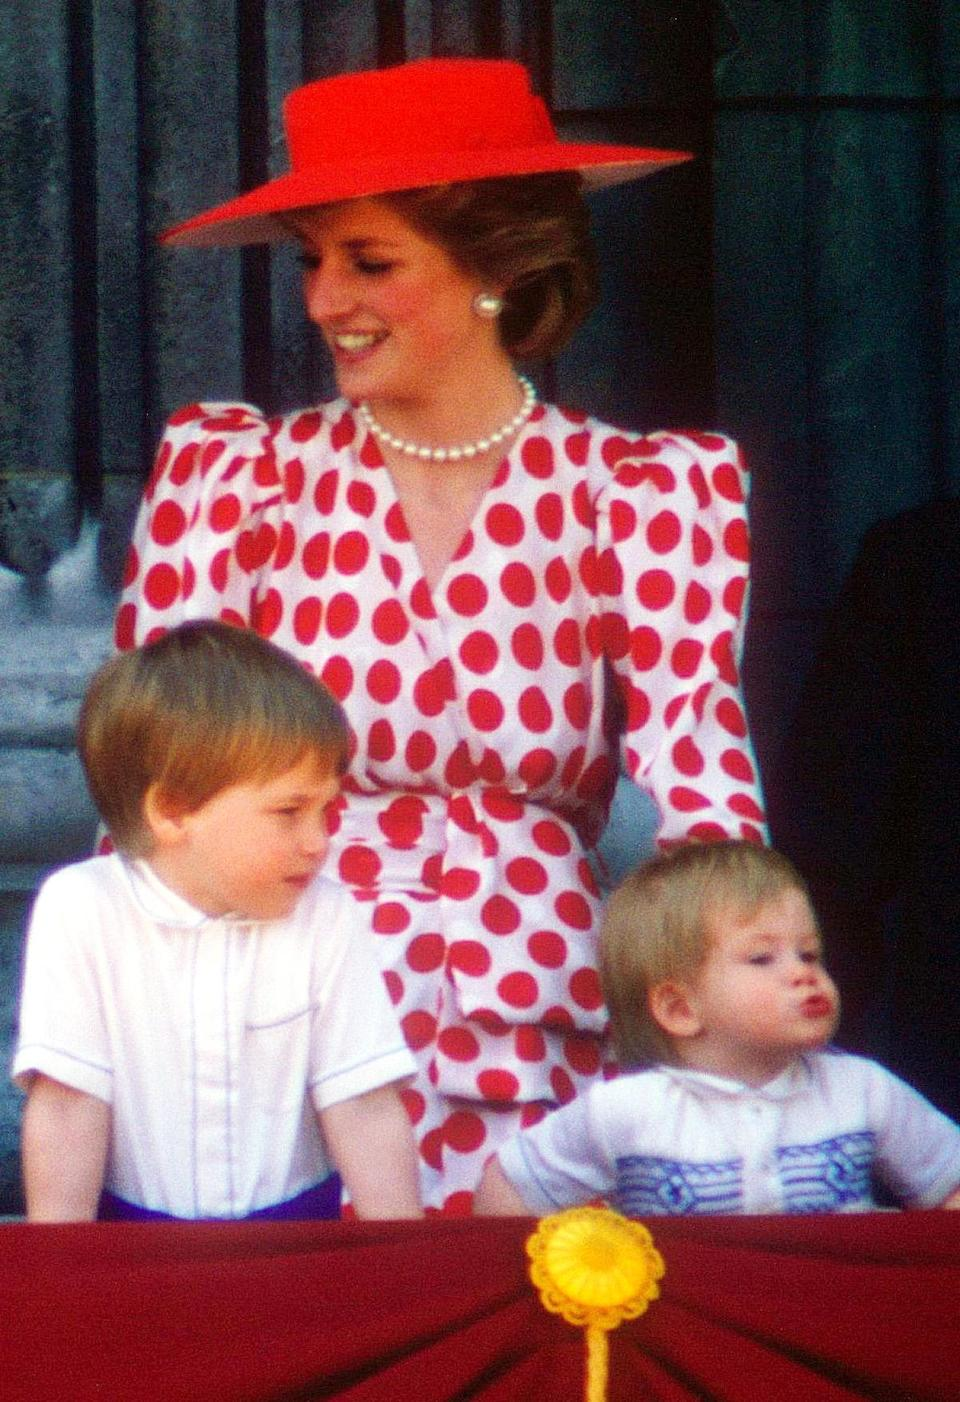 For the 1986 event, Princess Diana wore a polka dot dress and co-ordinating hat. (Rex pictures)